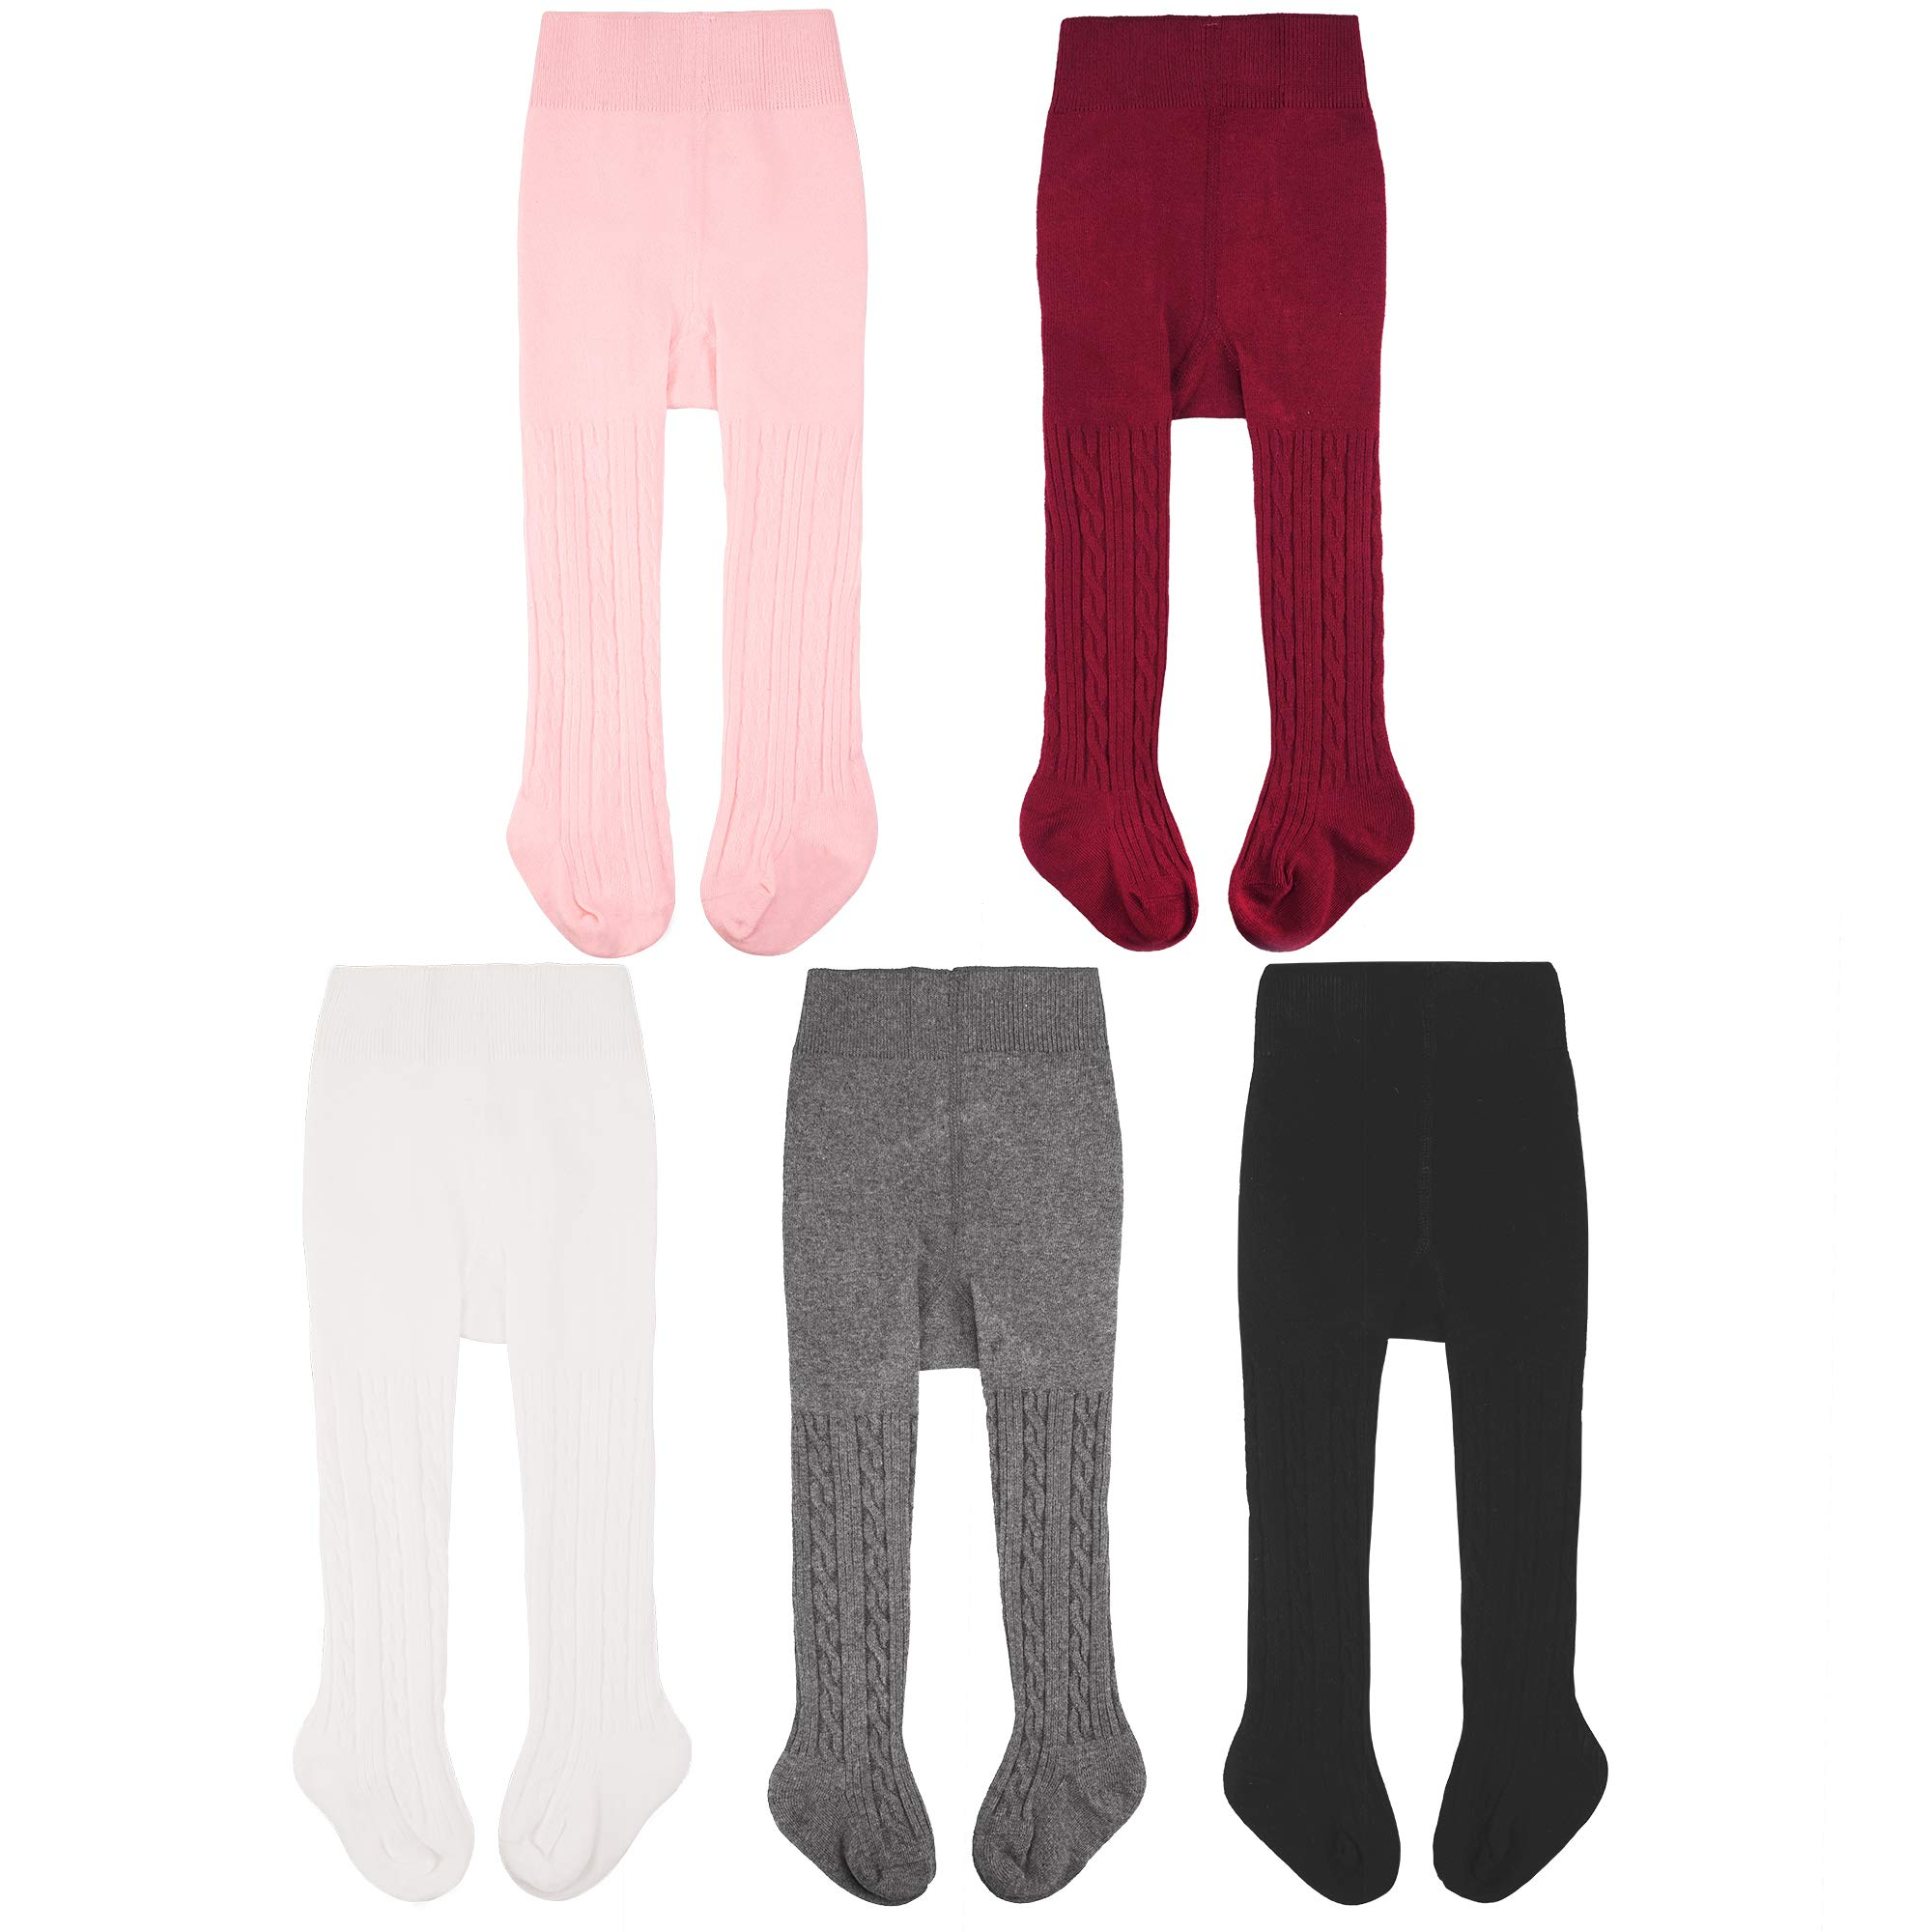 CozyWay Baby Girls Tights Cable Knit Cotton 3/5 Pack Leggings Pantyhose Infants Toddlers